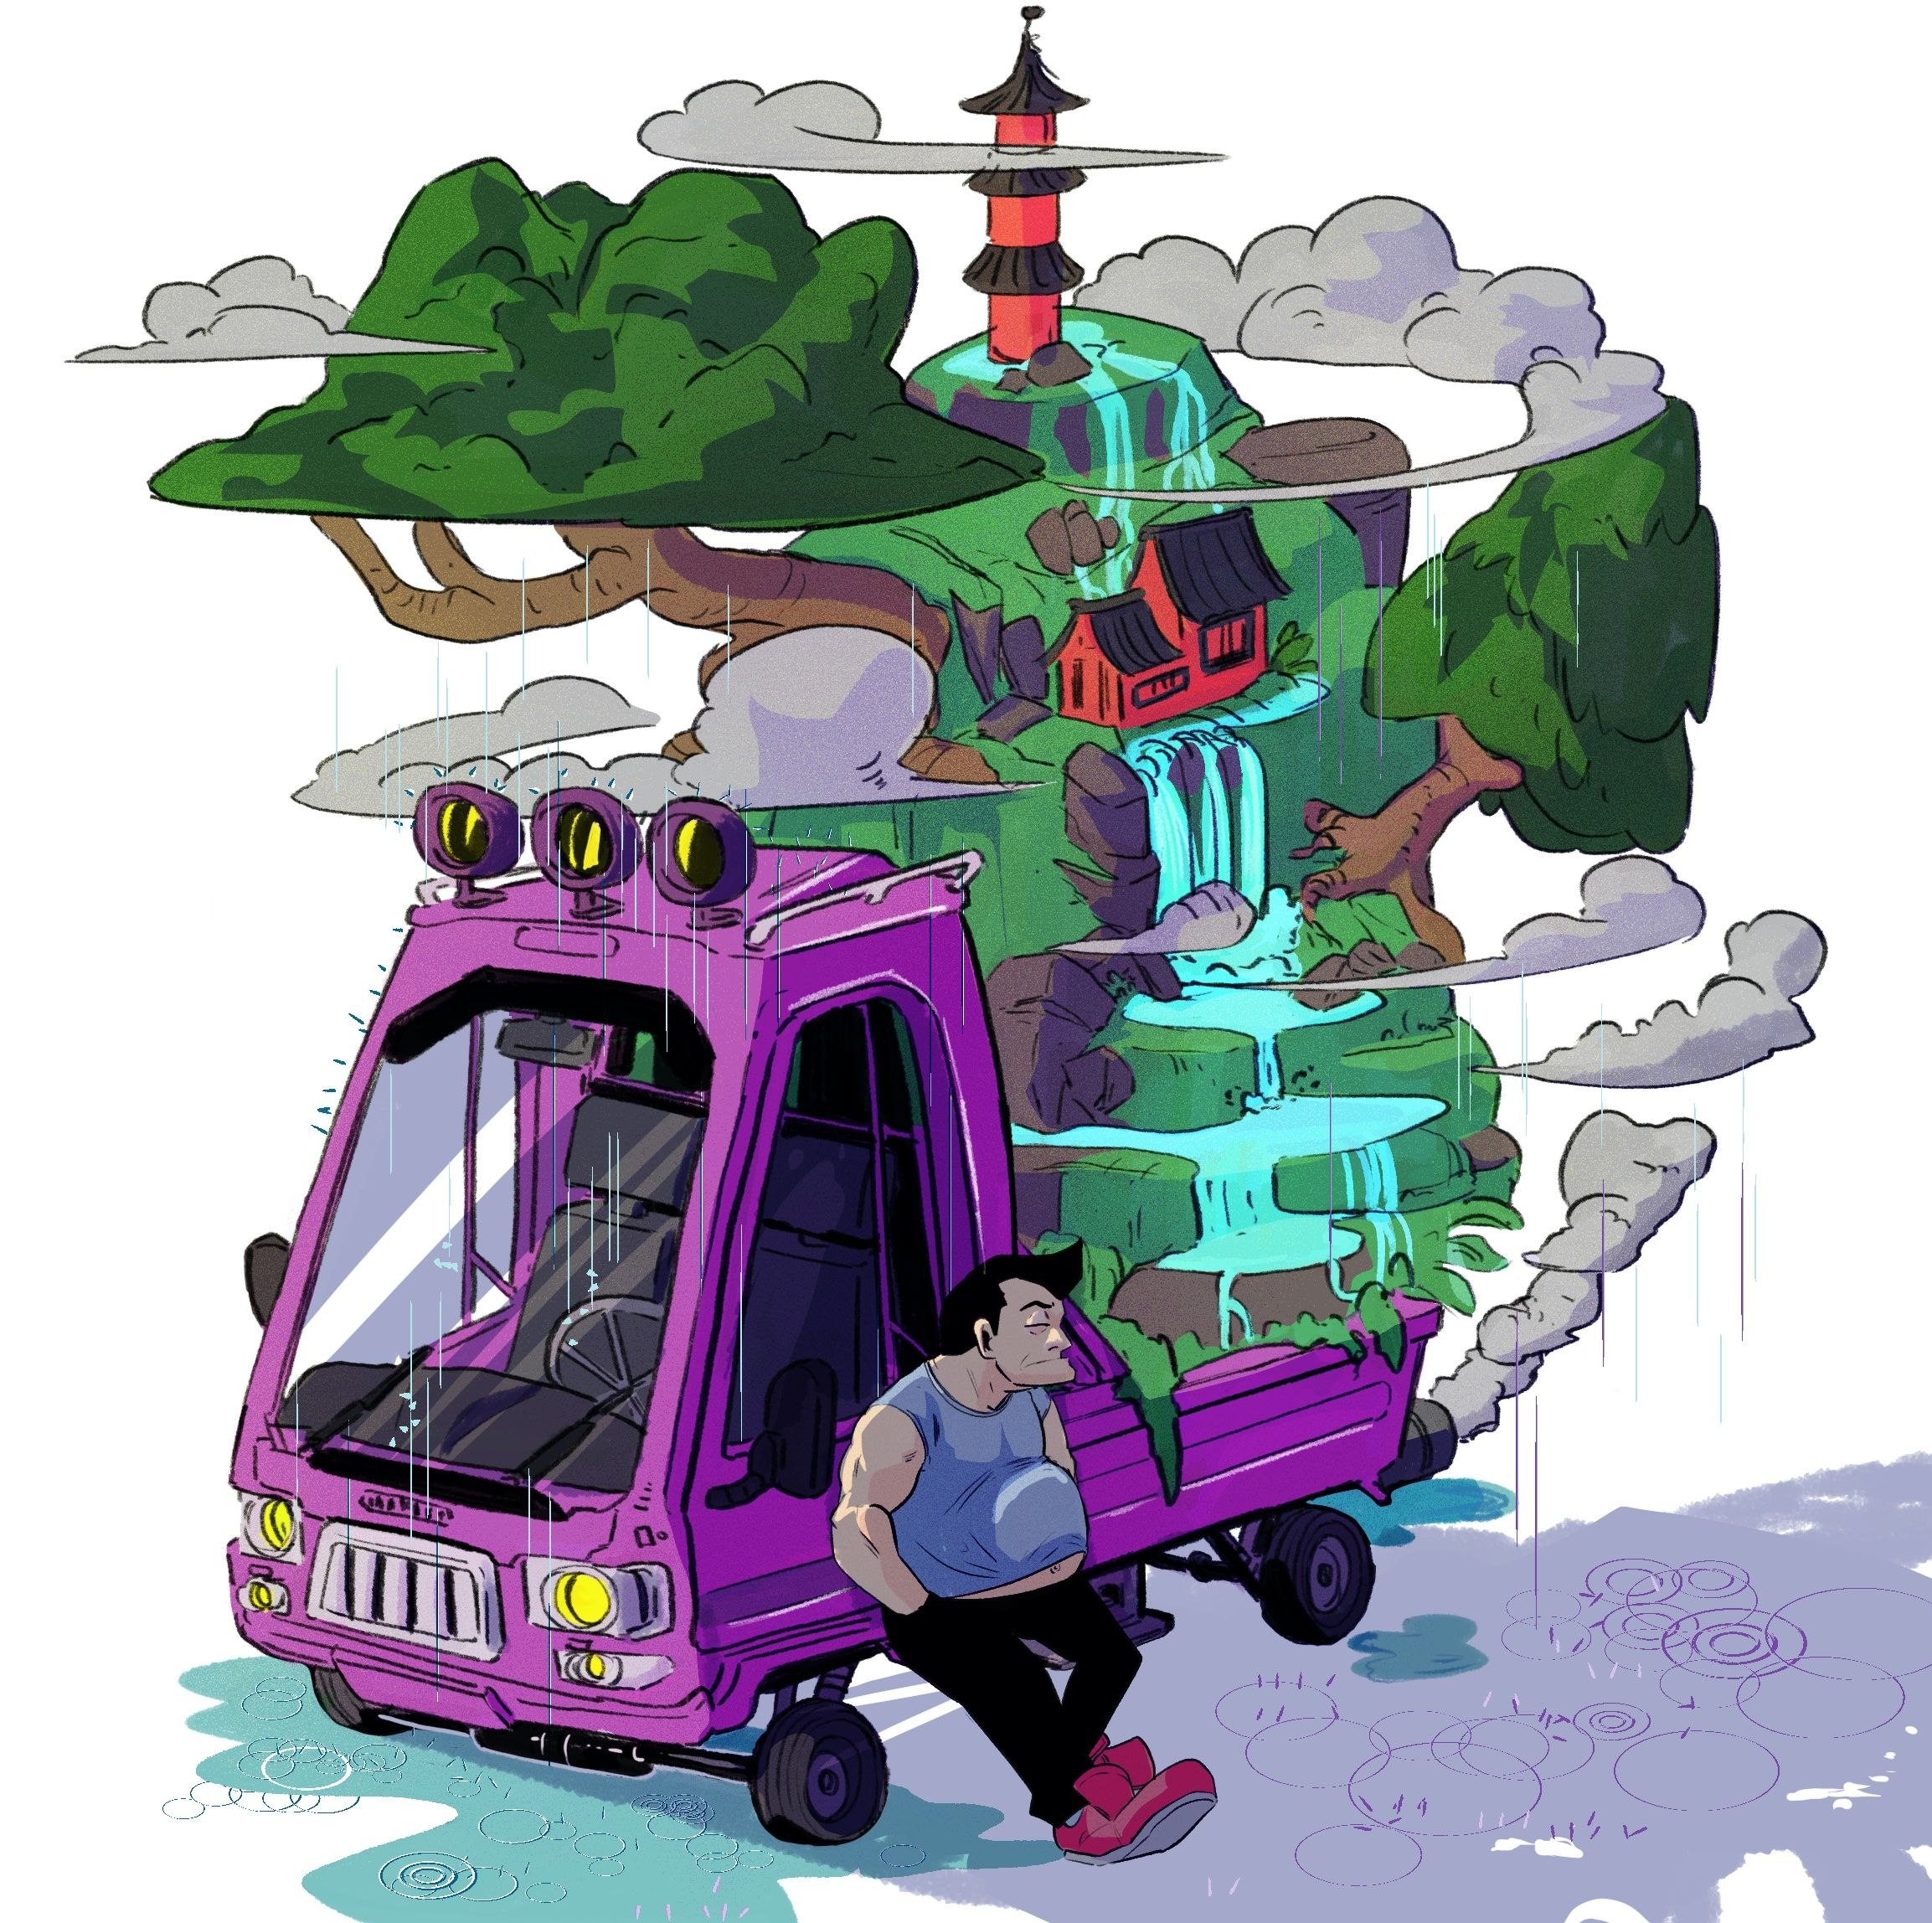 bonsai car with a little world in it. I think drawing cars and vehicles is really fun, even if I don't do it a lot. #cardrawing #vehicledesign #cartoon